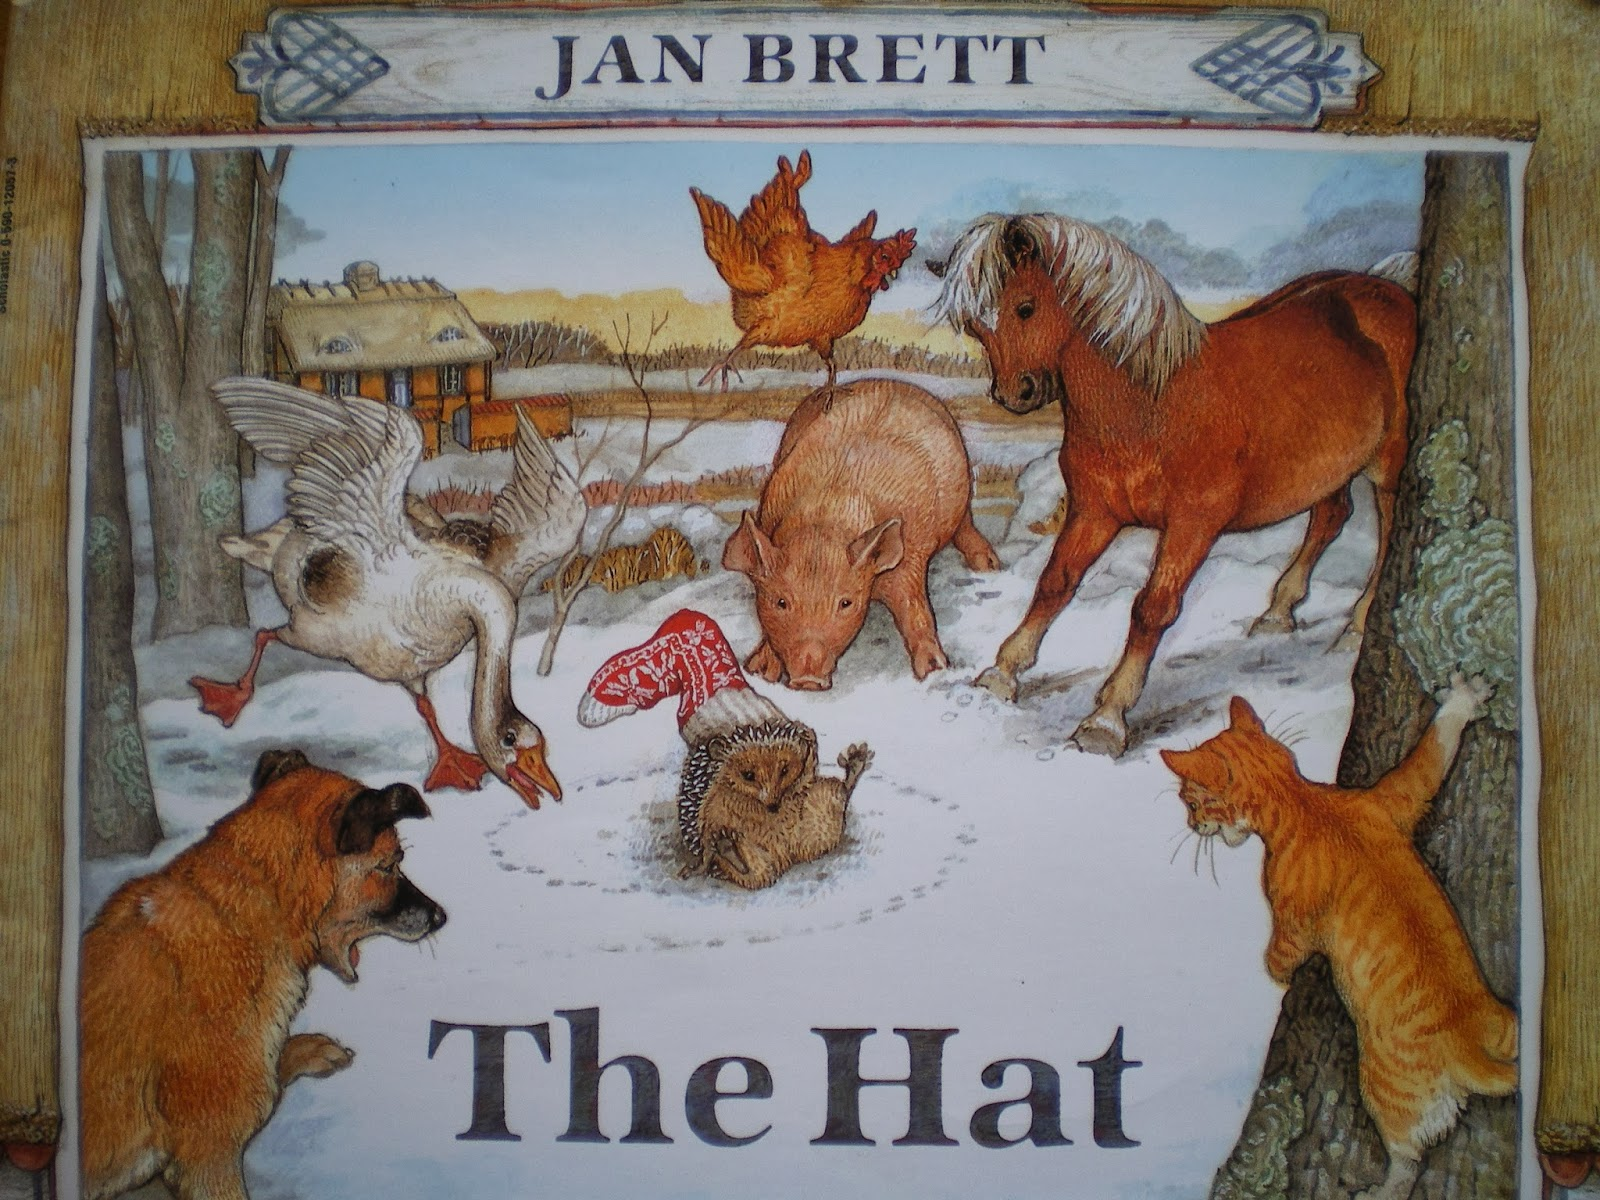 Language Arts Activities To Do with The Mitten by Jan Brett